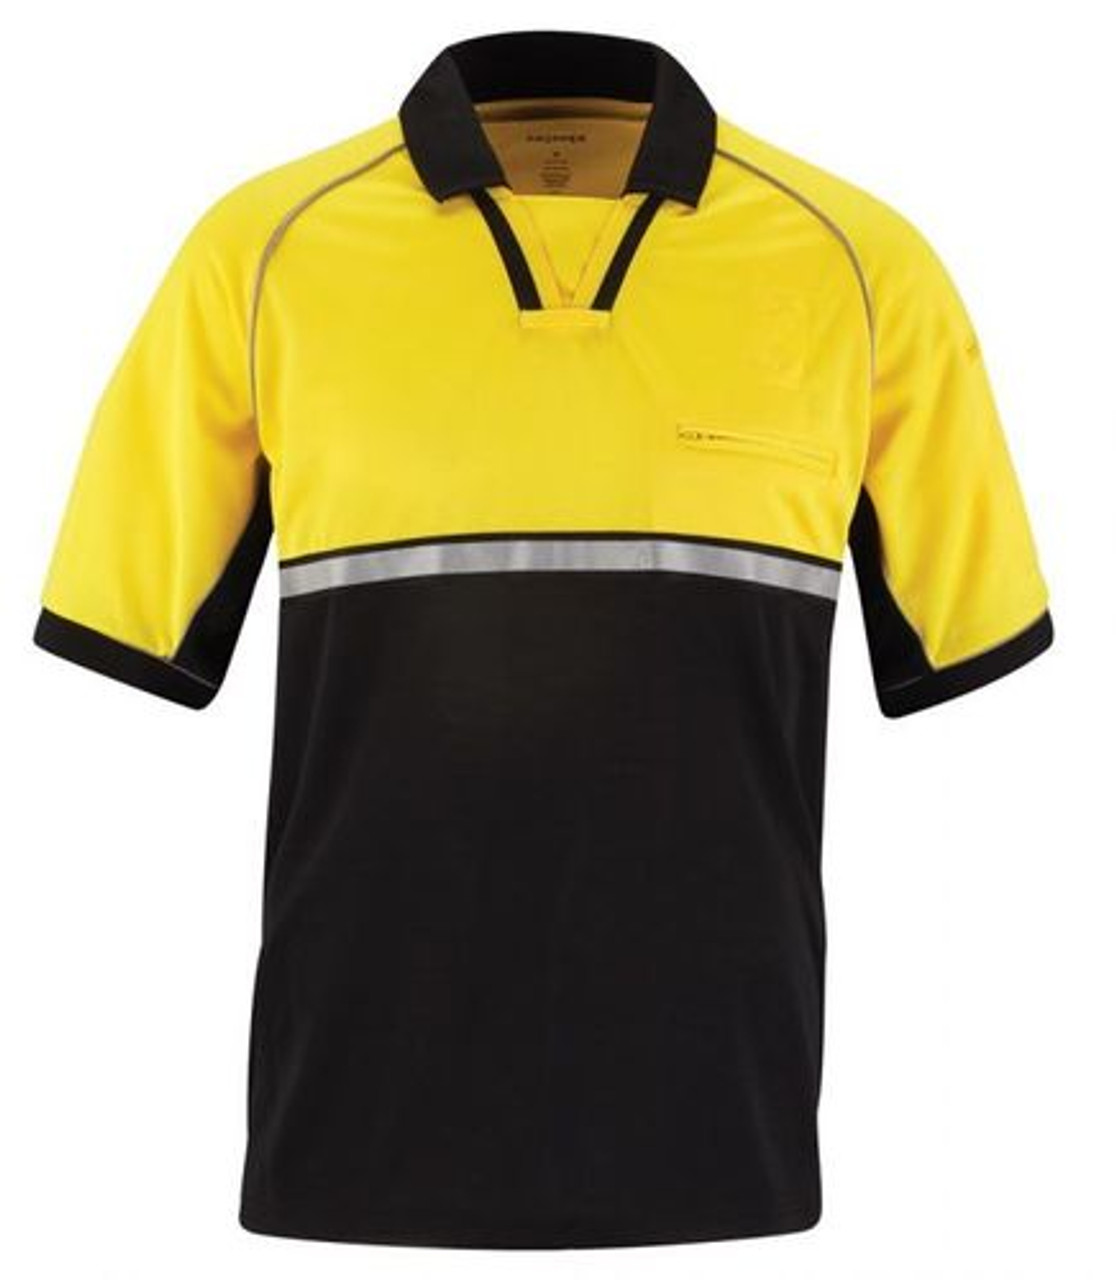 Propper® F5331 Bike Patrol Tactical Uniform Polo, Short Sleeve, 100% Polyester pique, Reflective trim on chest and sleeves, commonly chosen by Police and Security, Sternum Mic Loop